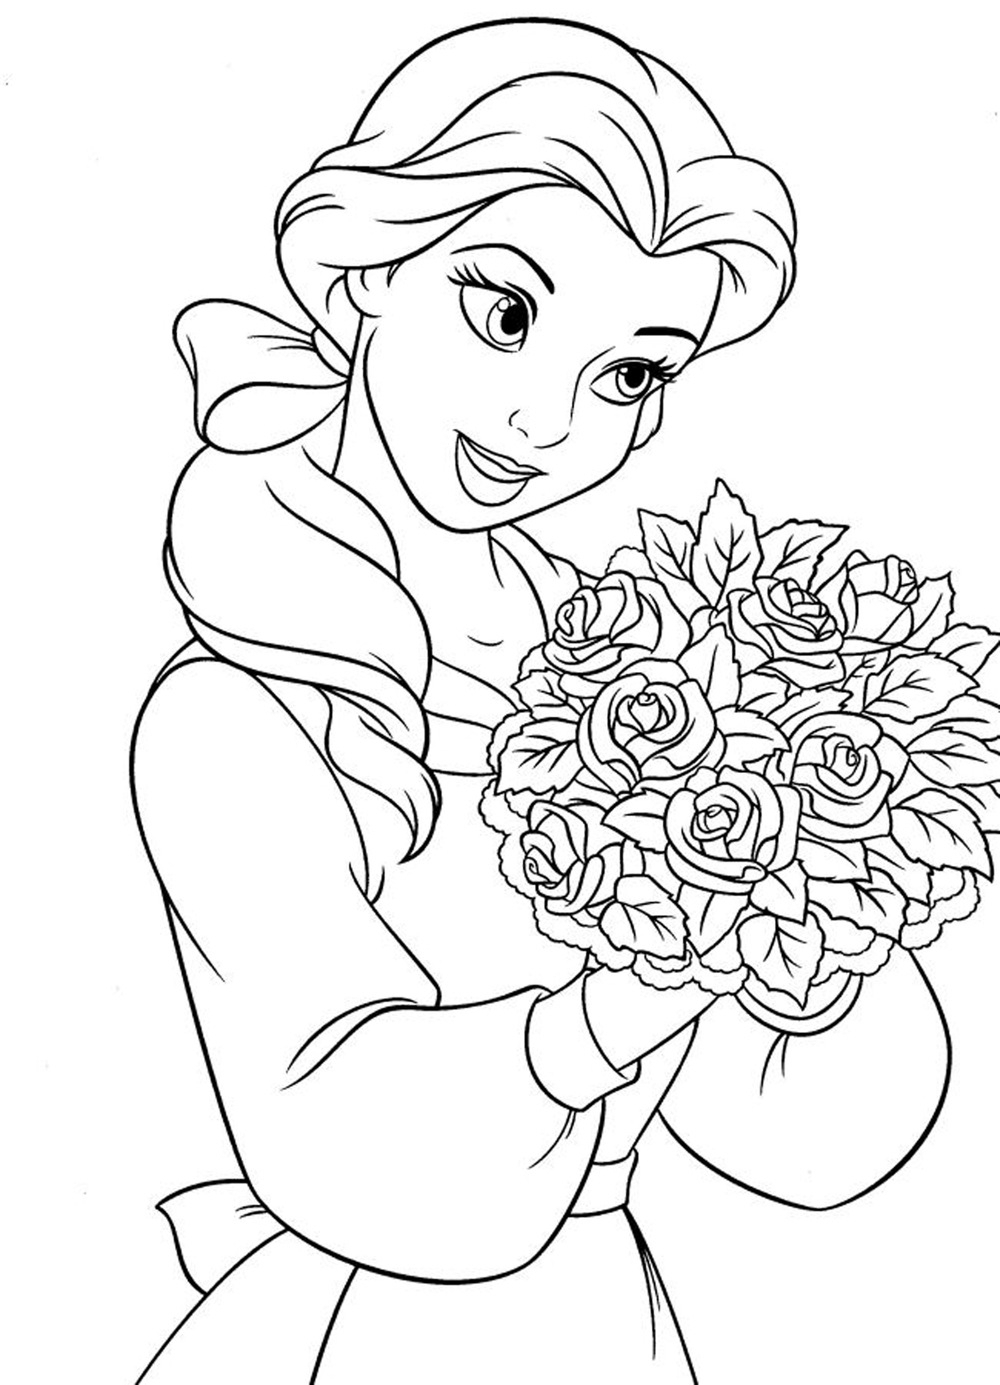 Printable Disney Coloring Pages 23 Disney Coloring Book Pages Printable Free Coloring Pages